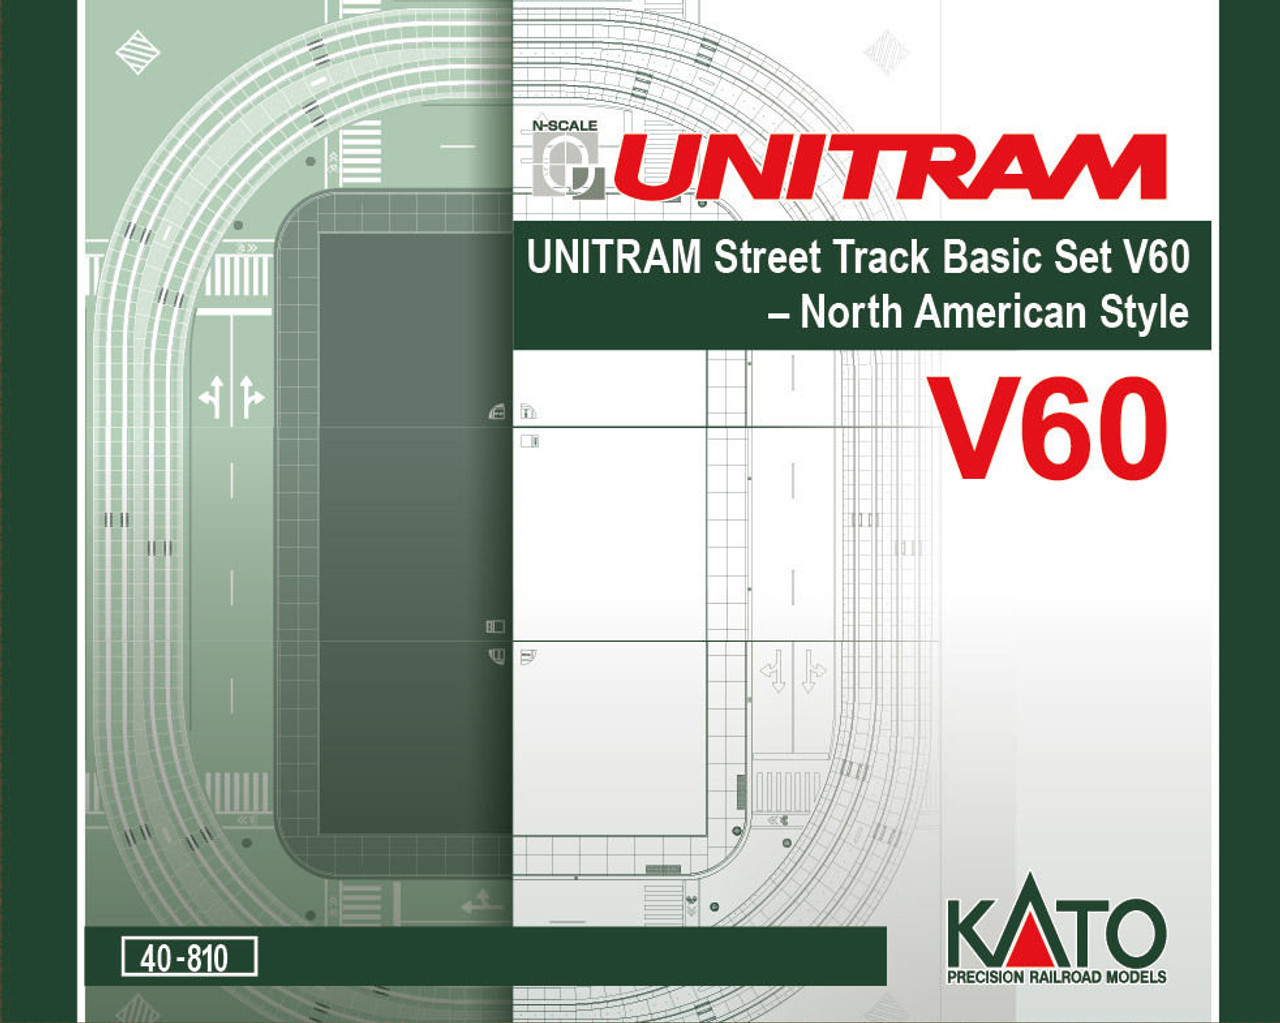 small resolution of oval diagram models wiring diagramoval diagram models wiring diagram tutorial kato n scale v60 unitram north